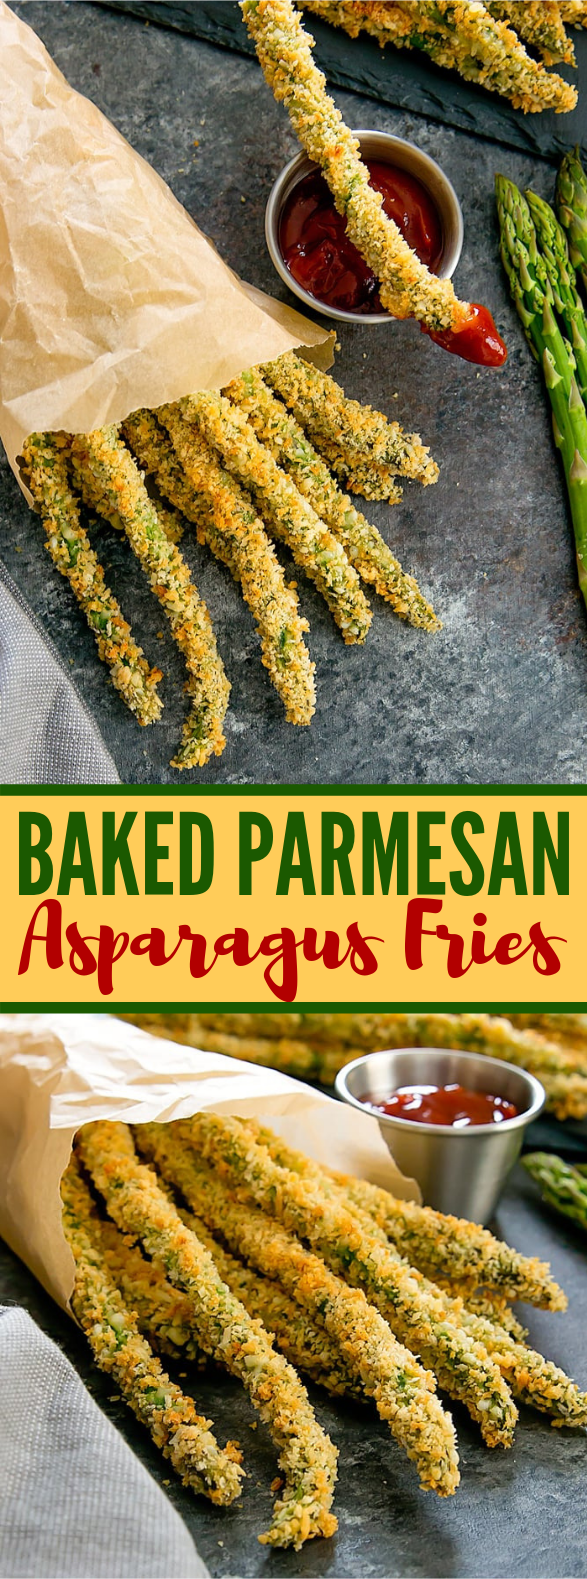 BAKED PARMESAN ASPARAGUS FRIES #vegetarian #veggies